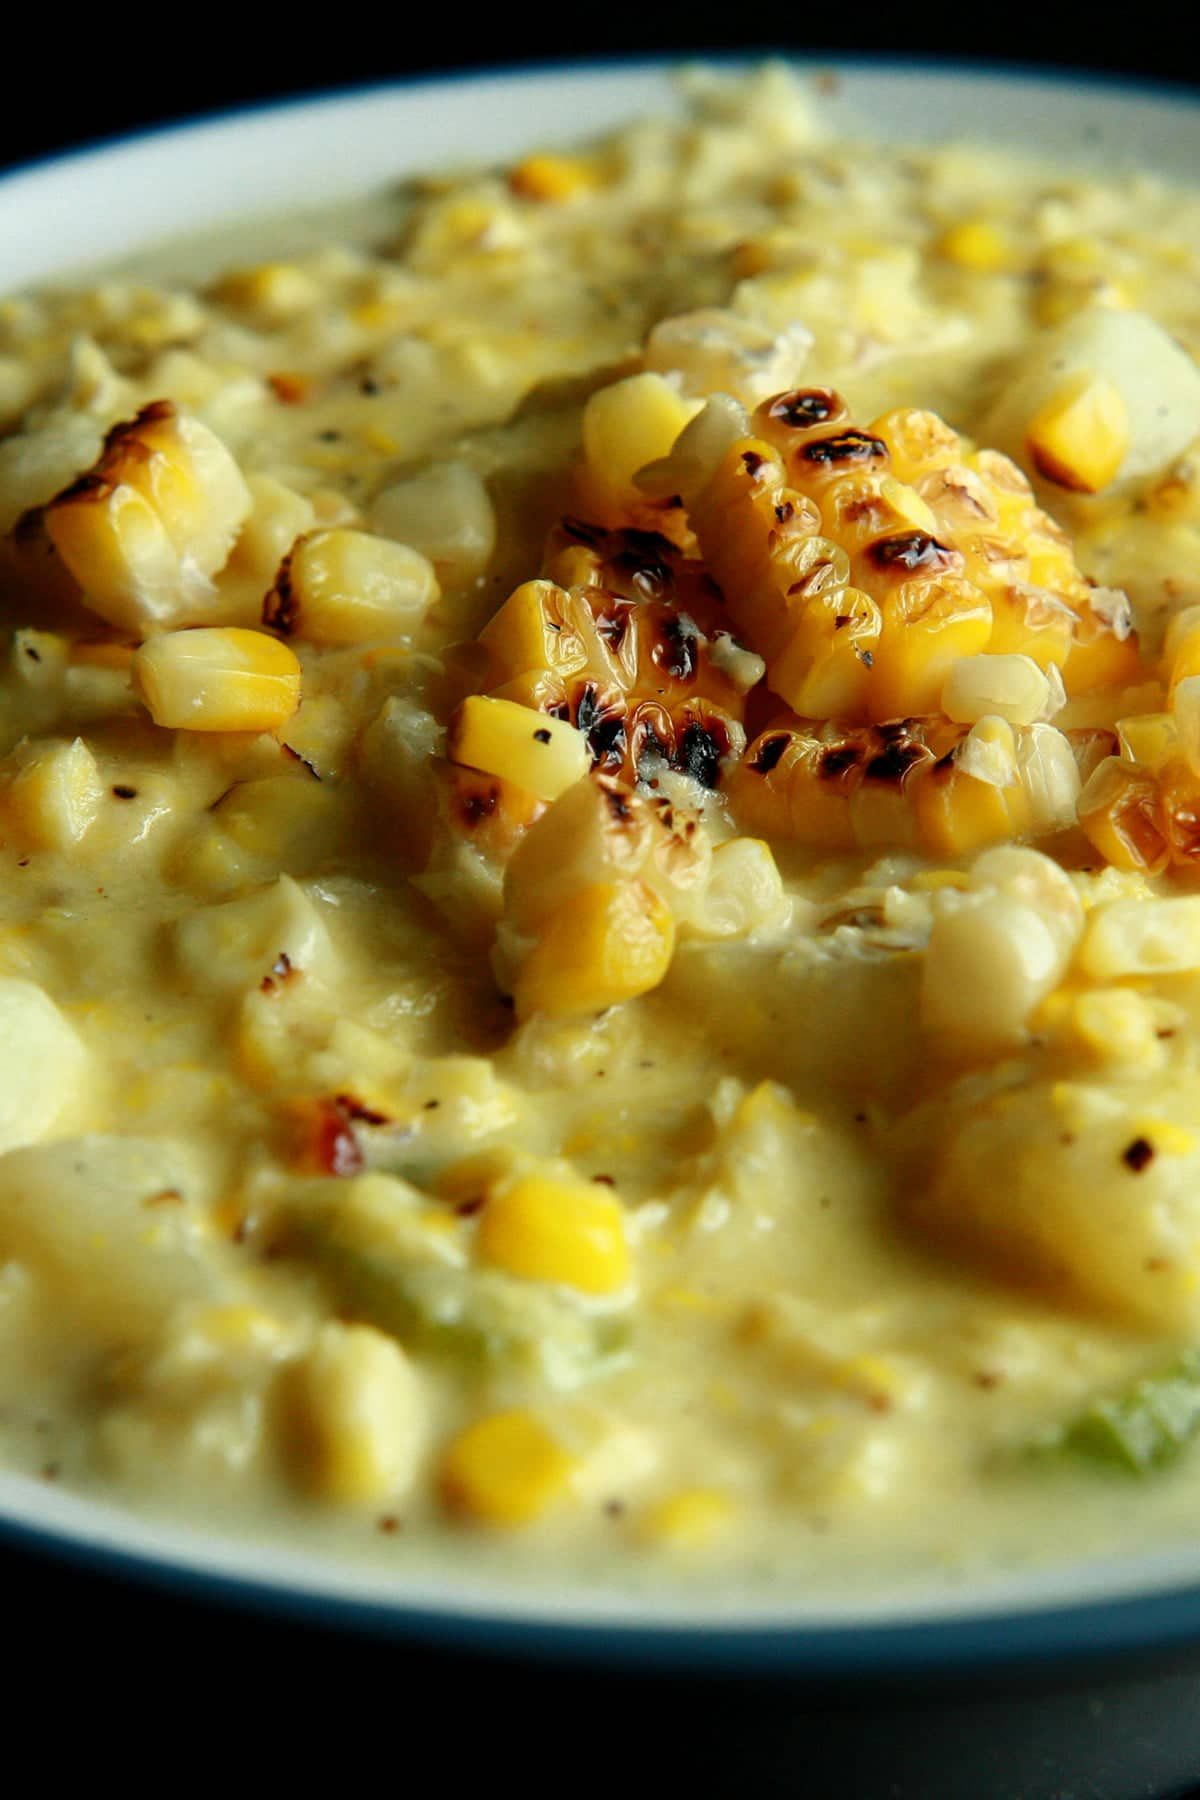 A white and cornflower blue bowl full of roasted corn chowder. Pieces of roasted corn garnish the surface of the soup.